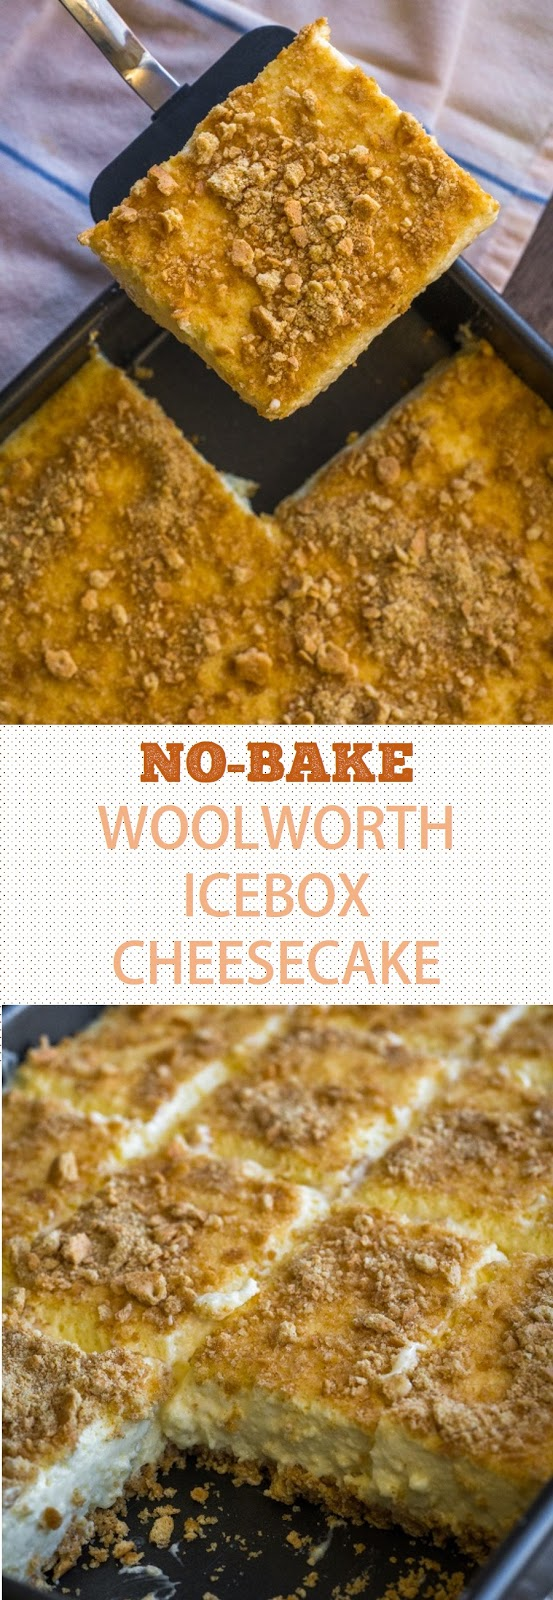 No-Bake Woolworth Icebox Cheesecake